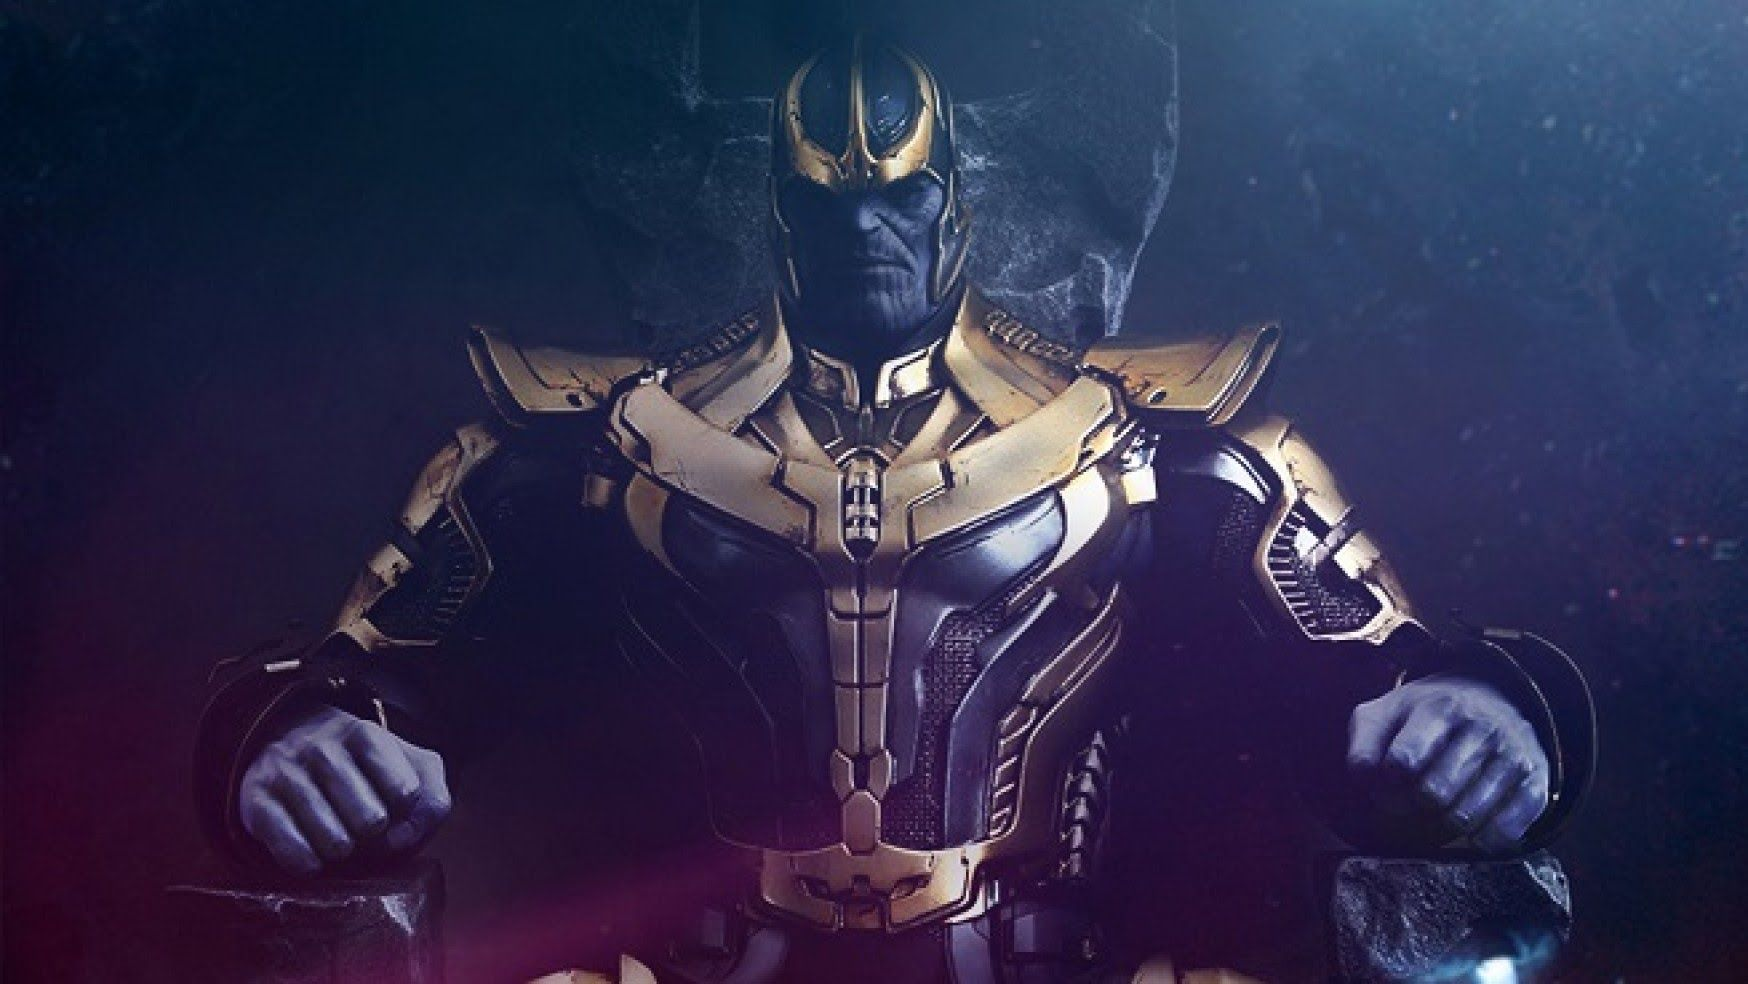 Pin By Andre The Professional On Avengers Avengers Infinity War War Comics Avengers